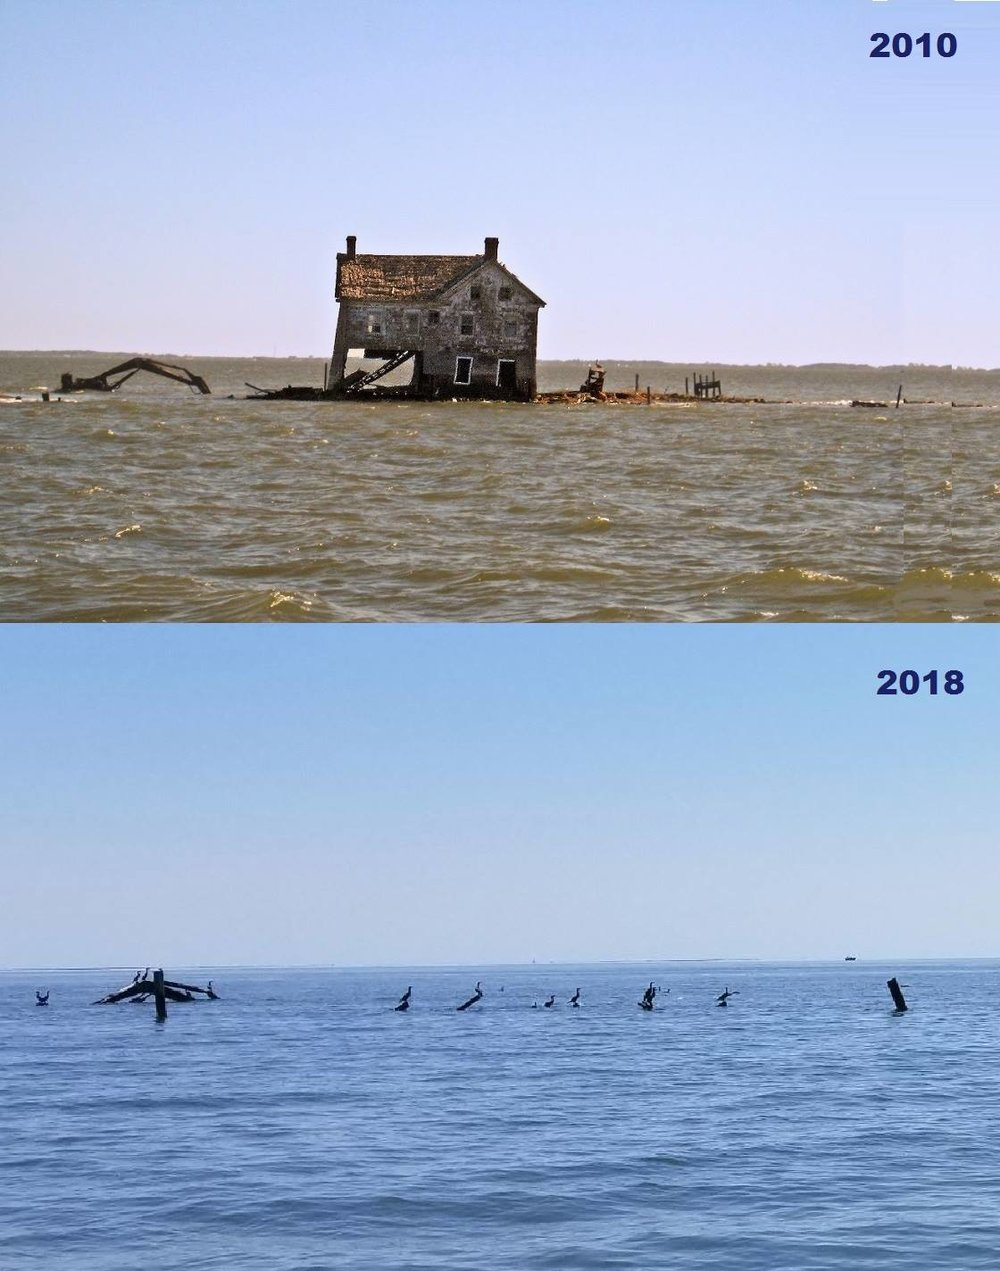 Last house on Holland Island 2010 vs. 2018  Image courtesy David Pietroski.